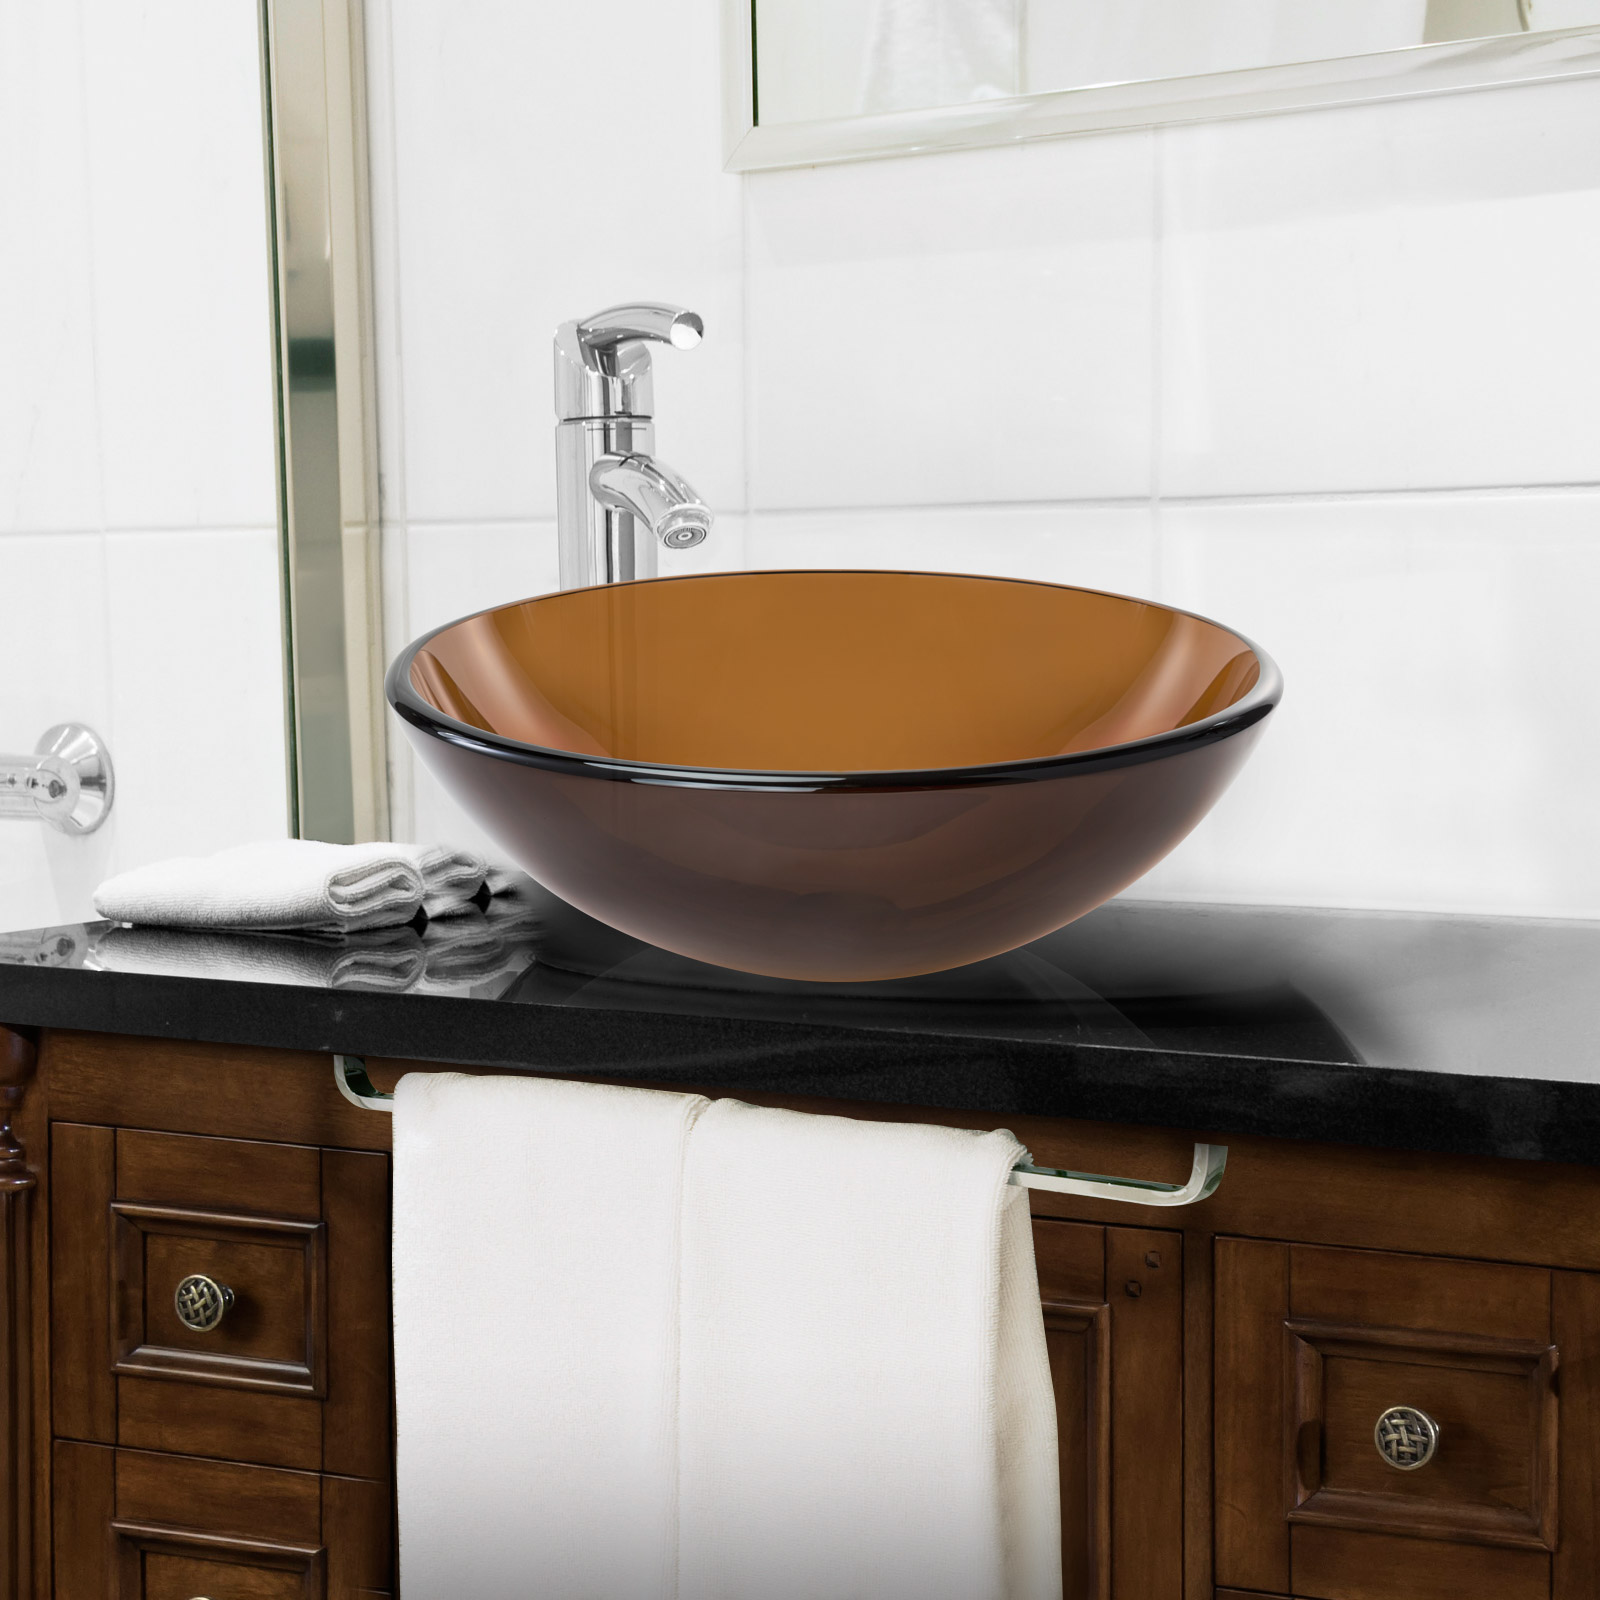 Round Vessel Sink Vanity : Details about Tempered Glass Round Vessel Vanity Bathroom Sink